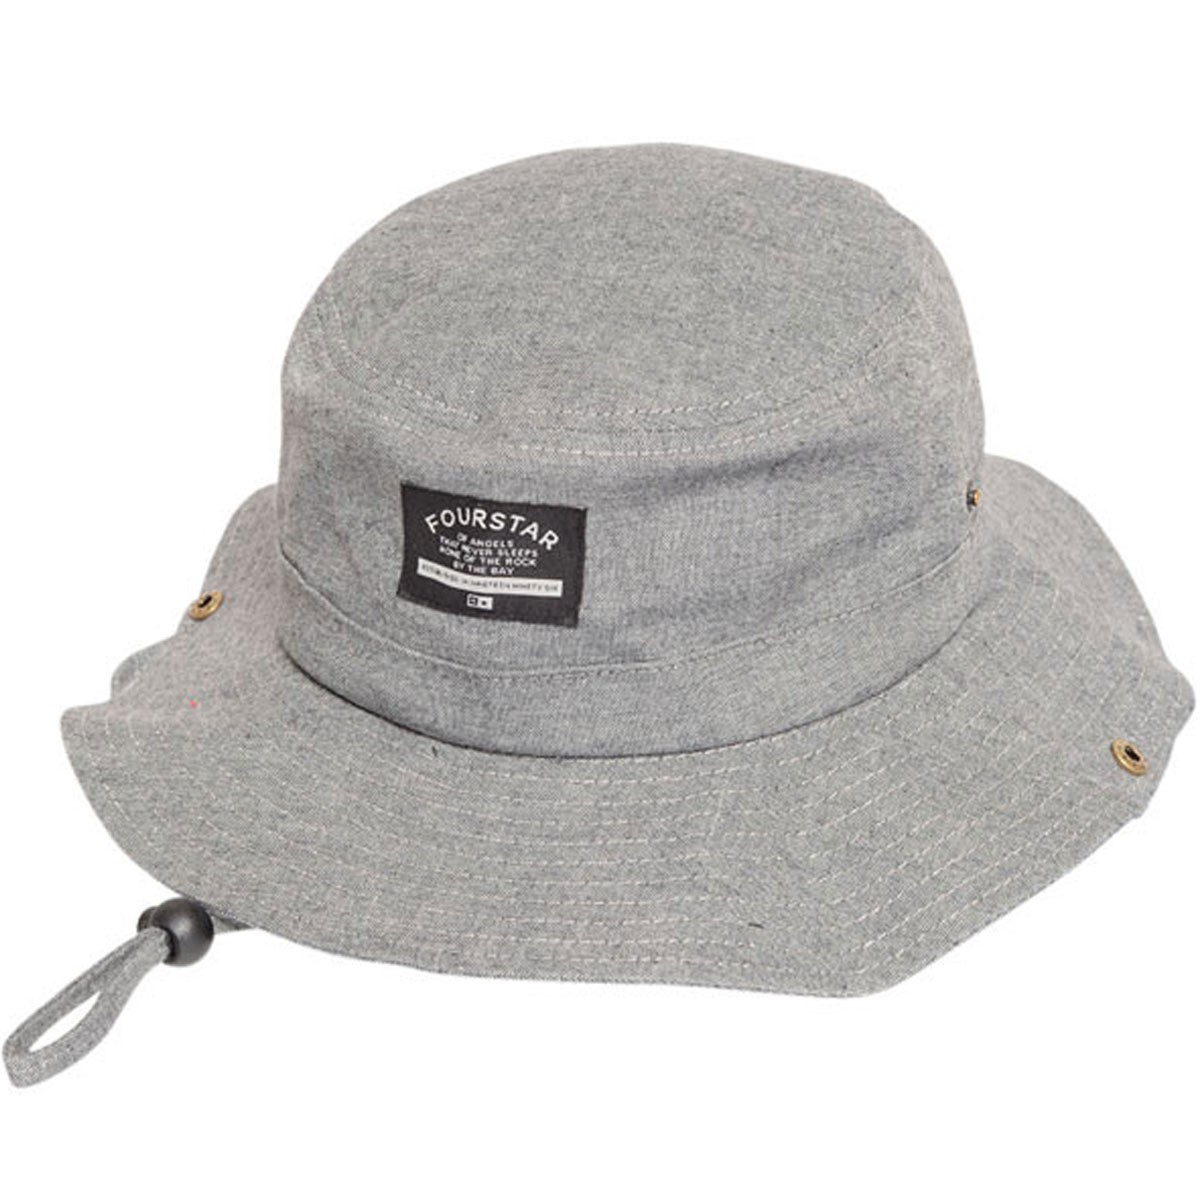 fourstar-chambray-boonie-hat-grey 2.1506856377.jpg 5d9ec817dec